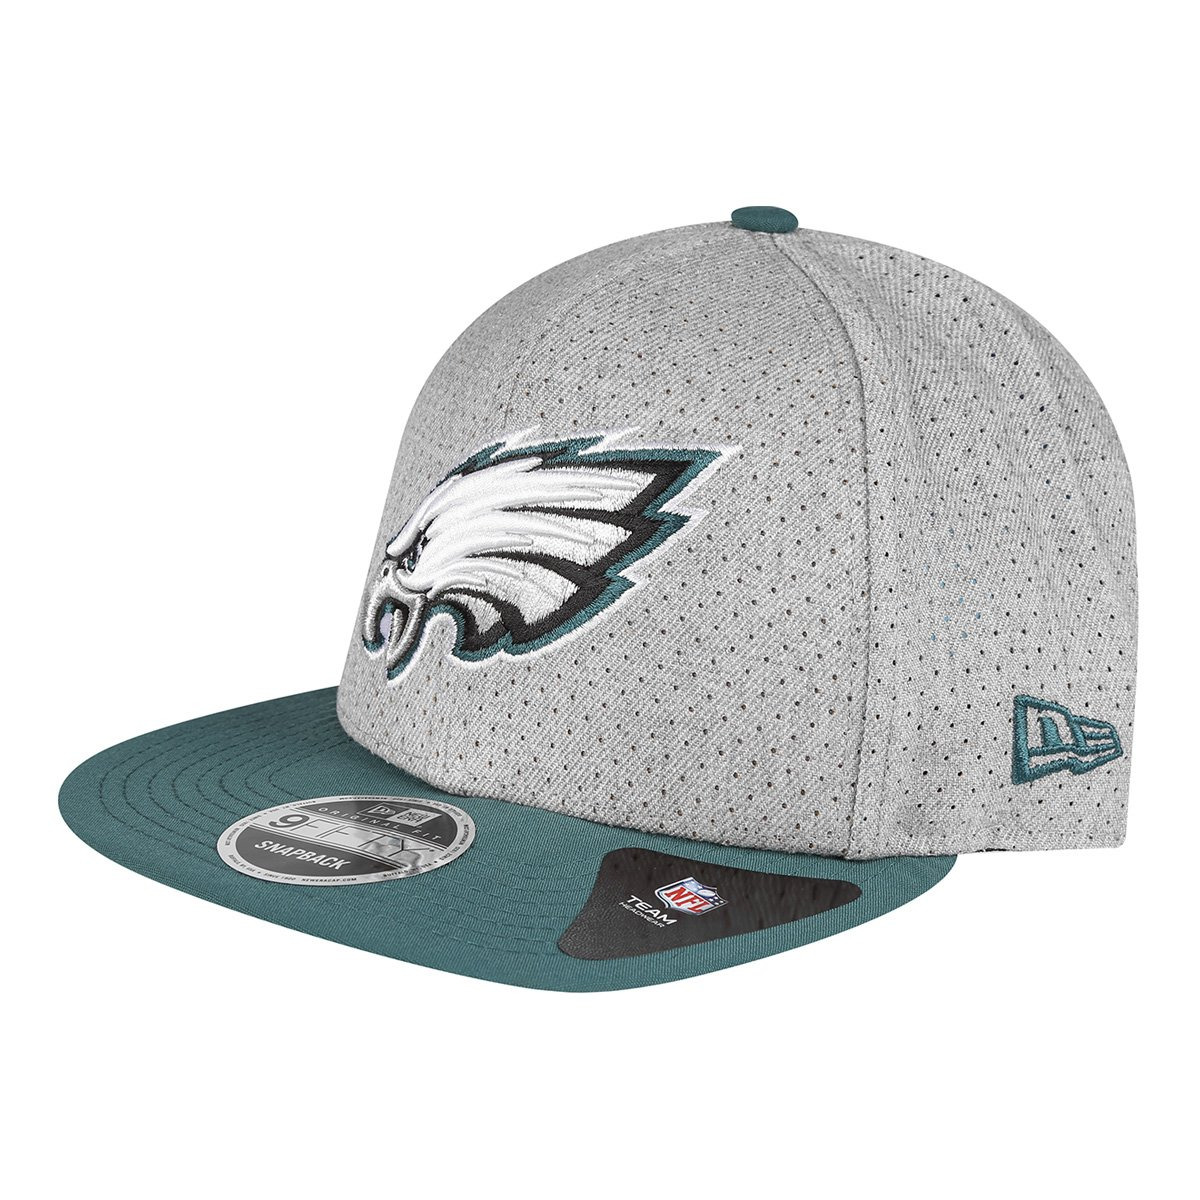 Boné New Era NFL Philadelphia Eagles Aba Reta 950 Of Sn 2T Perf - Compre  Agora  01579692581